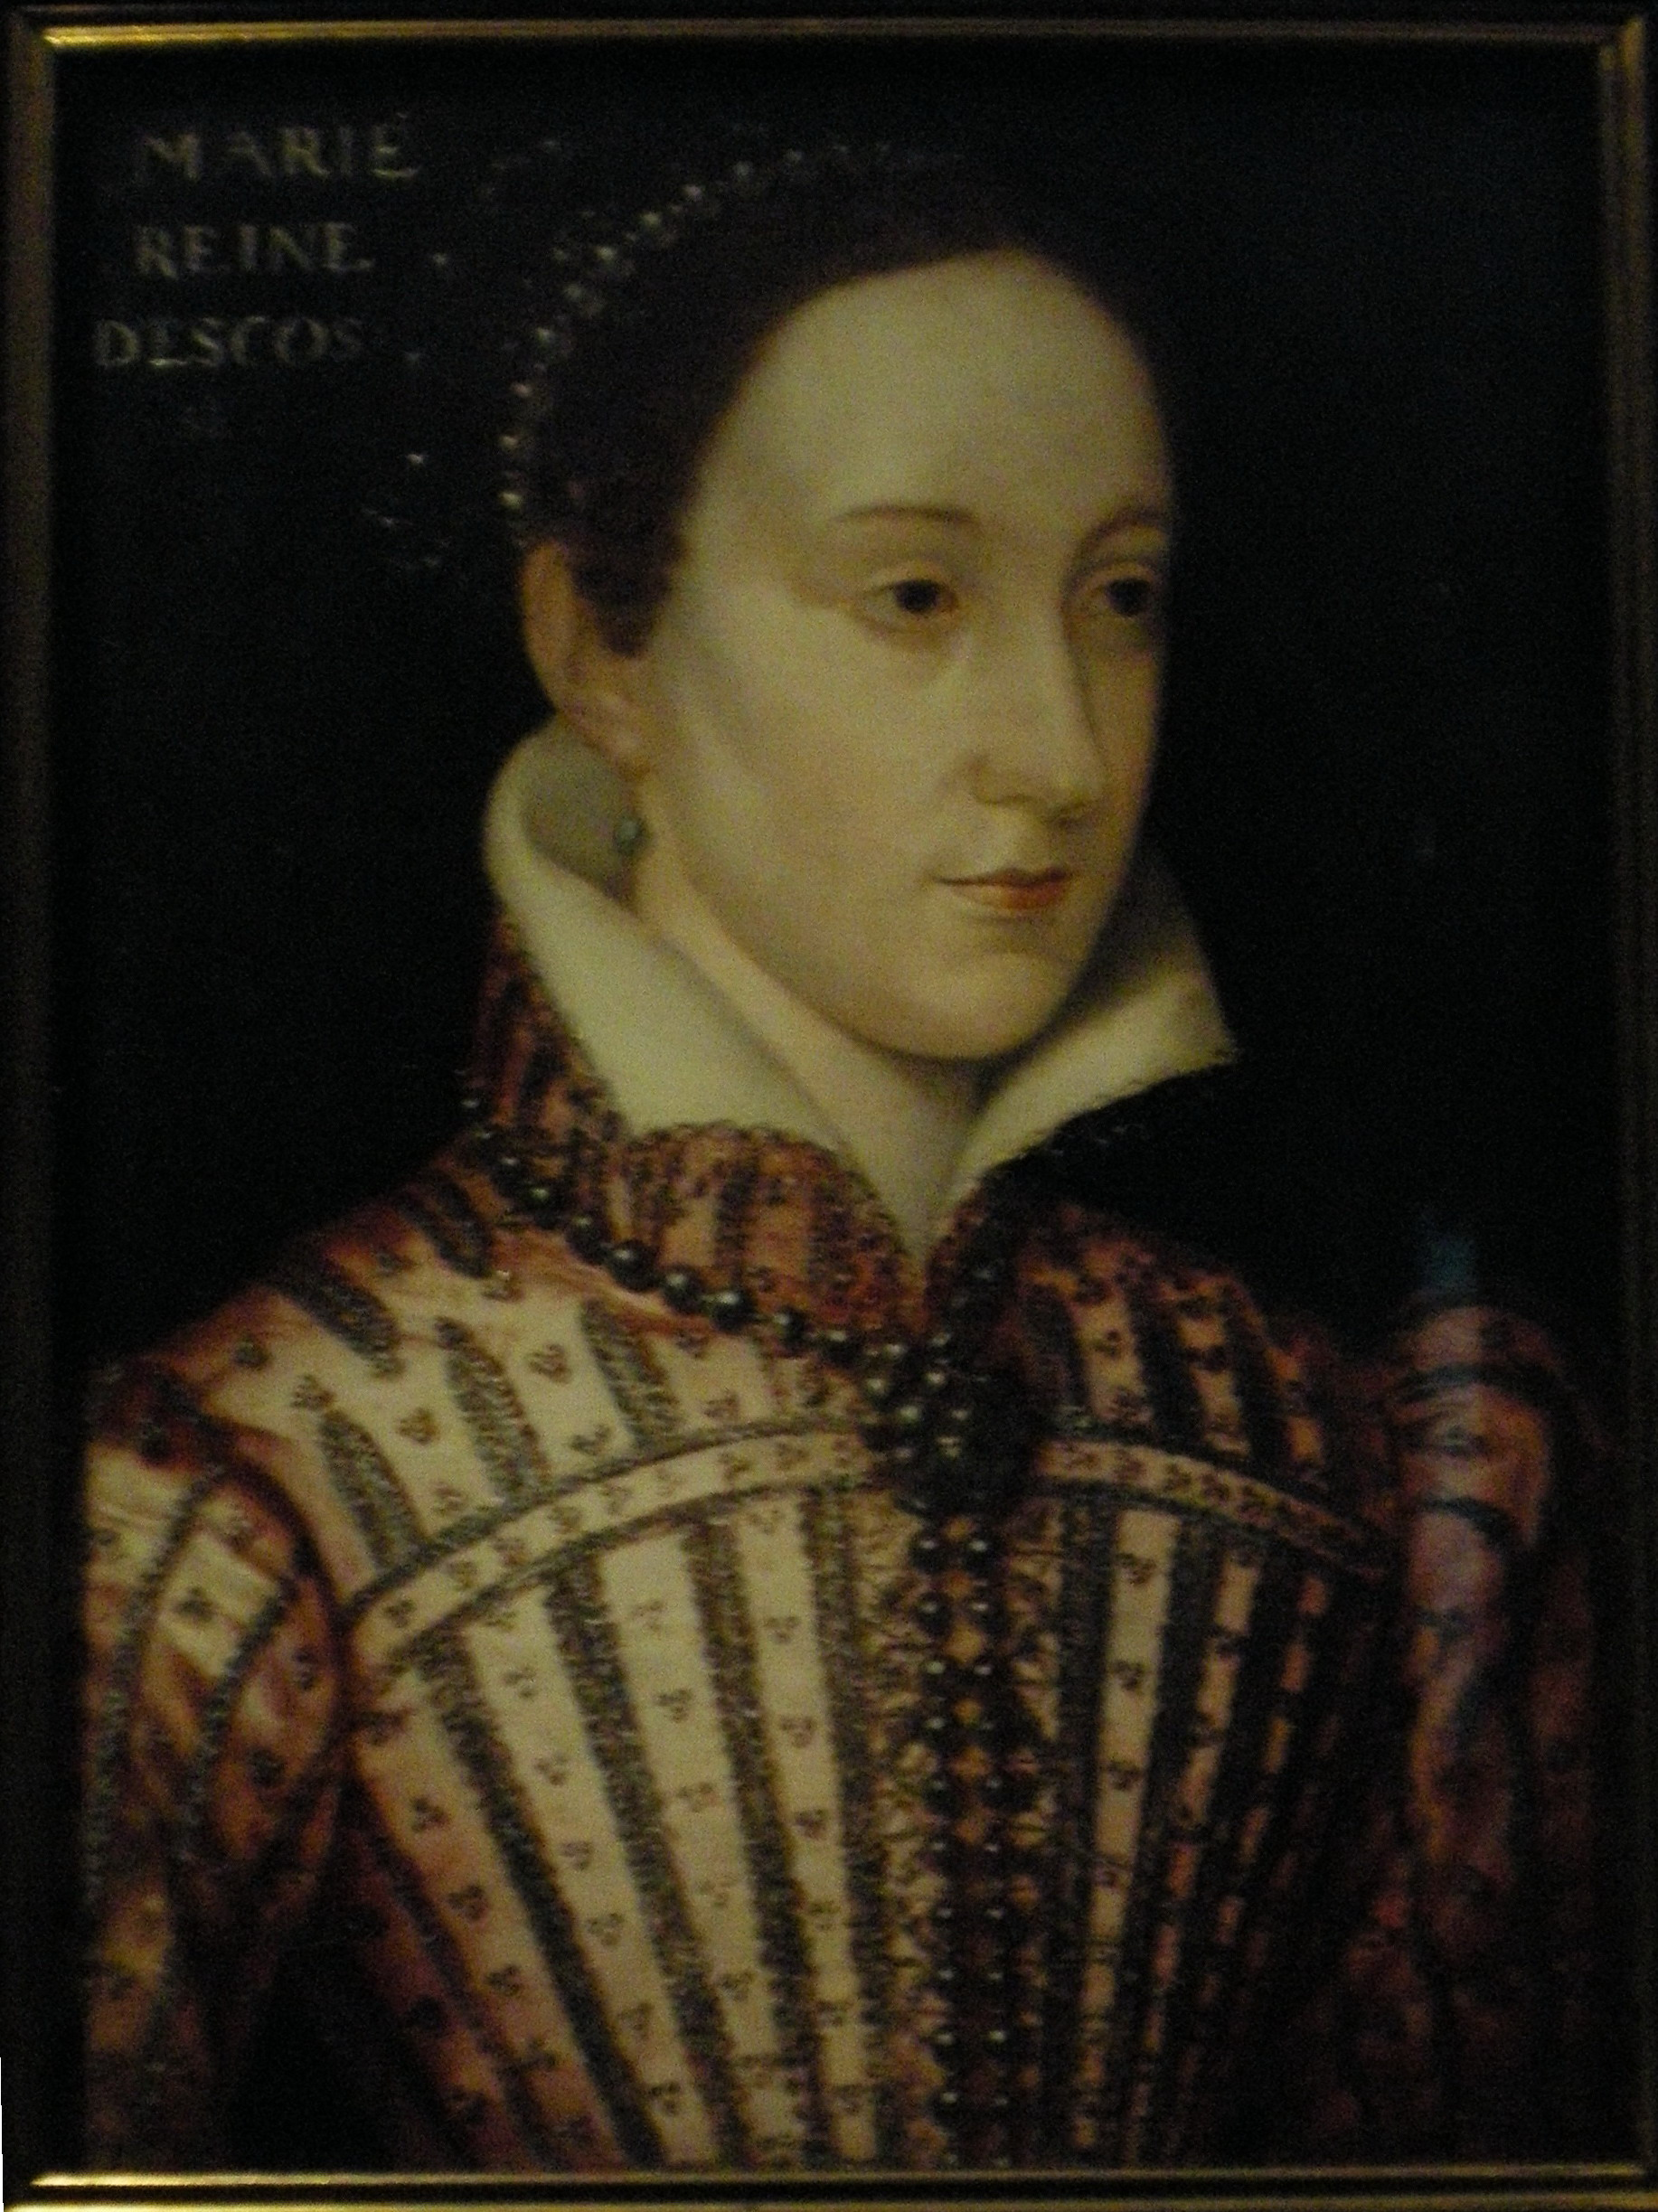 mary queen of scots facts mary queen of scots facts for kids interesting facts about mary queen of scots mary queen of scots fact file fun facts about mary queen of scots mary queen of scots fun facts elizabeth the first and mary queen of scots 10 facts about mary queen of scots 5 facts about mary queen of scots mary stuart facts facts about queen mary of scots mary queen of scots husbands facts lord darnley facts mary queen of scots facts ks2 mary queen of scots mary stuart mary queen of scots 2018 queen mary of scots mary queen lord darnley queen mary of scotland mary of scots mary queen of scots death queen of scots david rizzio mary queen of scots 2013 mary queen of scots son mary queen of scots husbands mary of scotland lord bothwell mary queen of scotland mary queen of scots netflix mary stuart queen of scots lord darnley reign mary queen of scots reign mary queen of scots imdb queen mary stuart queen mary scotland mary the queen of scots mary queen of scots brother mary queen of scots mother mary queen of scots and francis mary queen of scots parents margot robbie queen elizabeth margot robbie mary queen of scots mary queen of scots and elizabeth henry darnley mary scots saoirse ronan mary queen of scots henry stuart darnley mary queen of scots father mary queen of scott mary queen of scots marriages king francis and queen mary mary queen scots mary queen of scots rotten tomatoes mary queen of scots castle queen mary and queen elizabeth mary scotland marie queen reign mary stuart imdb mary queen of scots bloody mary queen of scots mary queen of scots margot robbie queen mary scots henry lord darnley mary queen of scots siblings margot robbie queen mary queen of scots bloody mary mary queen of scots second husband mary queen of scots saoirse ronan queen elizabeth and mary queen of scots mary queen of scots half brother queen mary husband henry stuart reign marie queen of scots mary queen of scots son james mary queen of scots first husband netflix mary queen of scots queen mary queen of scots mary queen of the scots david tennant mary queen of scots mary queen of scots and elizabeth 1 mary queen of scots religion mary queen of scots online the execution of mary stuart elizabeth queen of scots queen mary of scots death lord darnley death queen mary of scots husbands mary queen of scots history mqos mary queen of mary queen of scots biography mary queen of scots rizzio mary queen of scots beheaded mary queen of scots elizabeth mary queen of scots cause of death mary stuart and francis mary stuart queen of scotland mary queen of scots francis queen mary of france anne queen of scots queen mary queen elizabeth elizabeth i and mary queen of scots mary and darnley family name of mary queen of scots the queen of scots mary of guise death mary queen of scots 2019 queen of the scots margot robbie queen of scots mary queen of scots story margot robbie as queen elizabeth mary stewart queen of scots mary queen of scots born queen elizabeth 1 and mary queen of scots king francis and mary queen of scots mary stuart and elizabeth queen elizabeth and mary mary stuart son bothwell mary queen of scots mary queen of scots imprisonment mary queen of scots family mary queen of scots third husband mary of the scots queen of mary mary queen of scots 123movies mary tudor queen of scots catherine de medici and mary queen of scots queen elizabeth mary queen of scots mary queen of scots husband francis mary queen of scots and lord darnley queen margot robbie third husband of mary queen of scots queen mary of scots reign francis and mary queen of scots mary i of scotland mary queen of scots 2nd husband mary queen of scotland and the isles mary queens lord henry darnley reign mary and darnley queen of scots mary mary queen of scots antonia fraser mary of scots husbands queen mary of scots son queen marie of scotland queen elizabeth mary guy pearce mary queen of scots queen mary of the scots mary queen of scots lord darnley mary queen of scots putlocker scotland queen mary mary queen of scots catholic mary queen of scots life mary stuart francis stuart queen mary queen of scots david rizzio mary queen of scots and king francis mary queen of scots darnley mary of scots death mary queen of scots died mary queen of scots dad mary queen of scots mother and father mary queen of scots 3rd husband mary queen of scots birthplace mary queen of scots head elizabeth mary stuart queen elizabeth and mary stuart mary queen of scots and bothwell mary queen of scots true story mary stuart and francis valois queen of s mary queen of scots painting queen mary france mary stuart scotland mary stuart elizabeth 1 queen mary of scots castle the death of mary queen of scots mary tudor and mary queen of scots mary queen of scots full name maria queen of scots mary queen of scots childhood mary queen of scots and bloody mary rotten tomatoes mary queen of scots mary stuart and elizabeth 1 saoirse ronan queen of scots mary queen of scots executed mary queen of scots rotten mary queen of scots early life mary queen of scots age queen mary of scott mary queen of scots claim to the throne john guy mary queen of scots mary queen of scots henry viii catherine queen of scots james stuart earl of moray mary i and elizabeth i in my end is my beginning mary queen of scots mary queen of scots vanessa redgrave mary queen of scots birth mary queen of scots married francis mary queen of scots france queen mary of scots and francis the story of mary queen of scots mary scott queen mary stuart netflix mary queen of scots cousin elizabeth queen of scots netflix mary queen of scots google drive elizabeth i mary stuart elizabeth 1 mary queen of scots james hepburn earl of bothwell